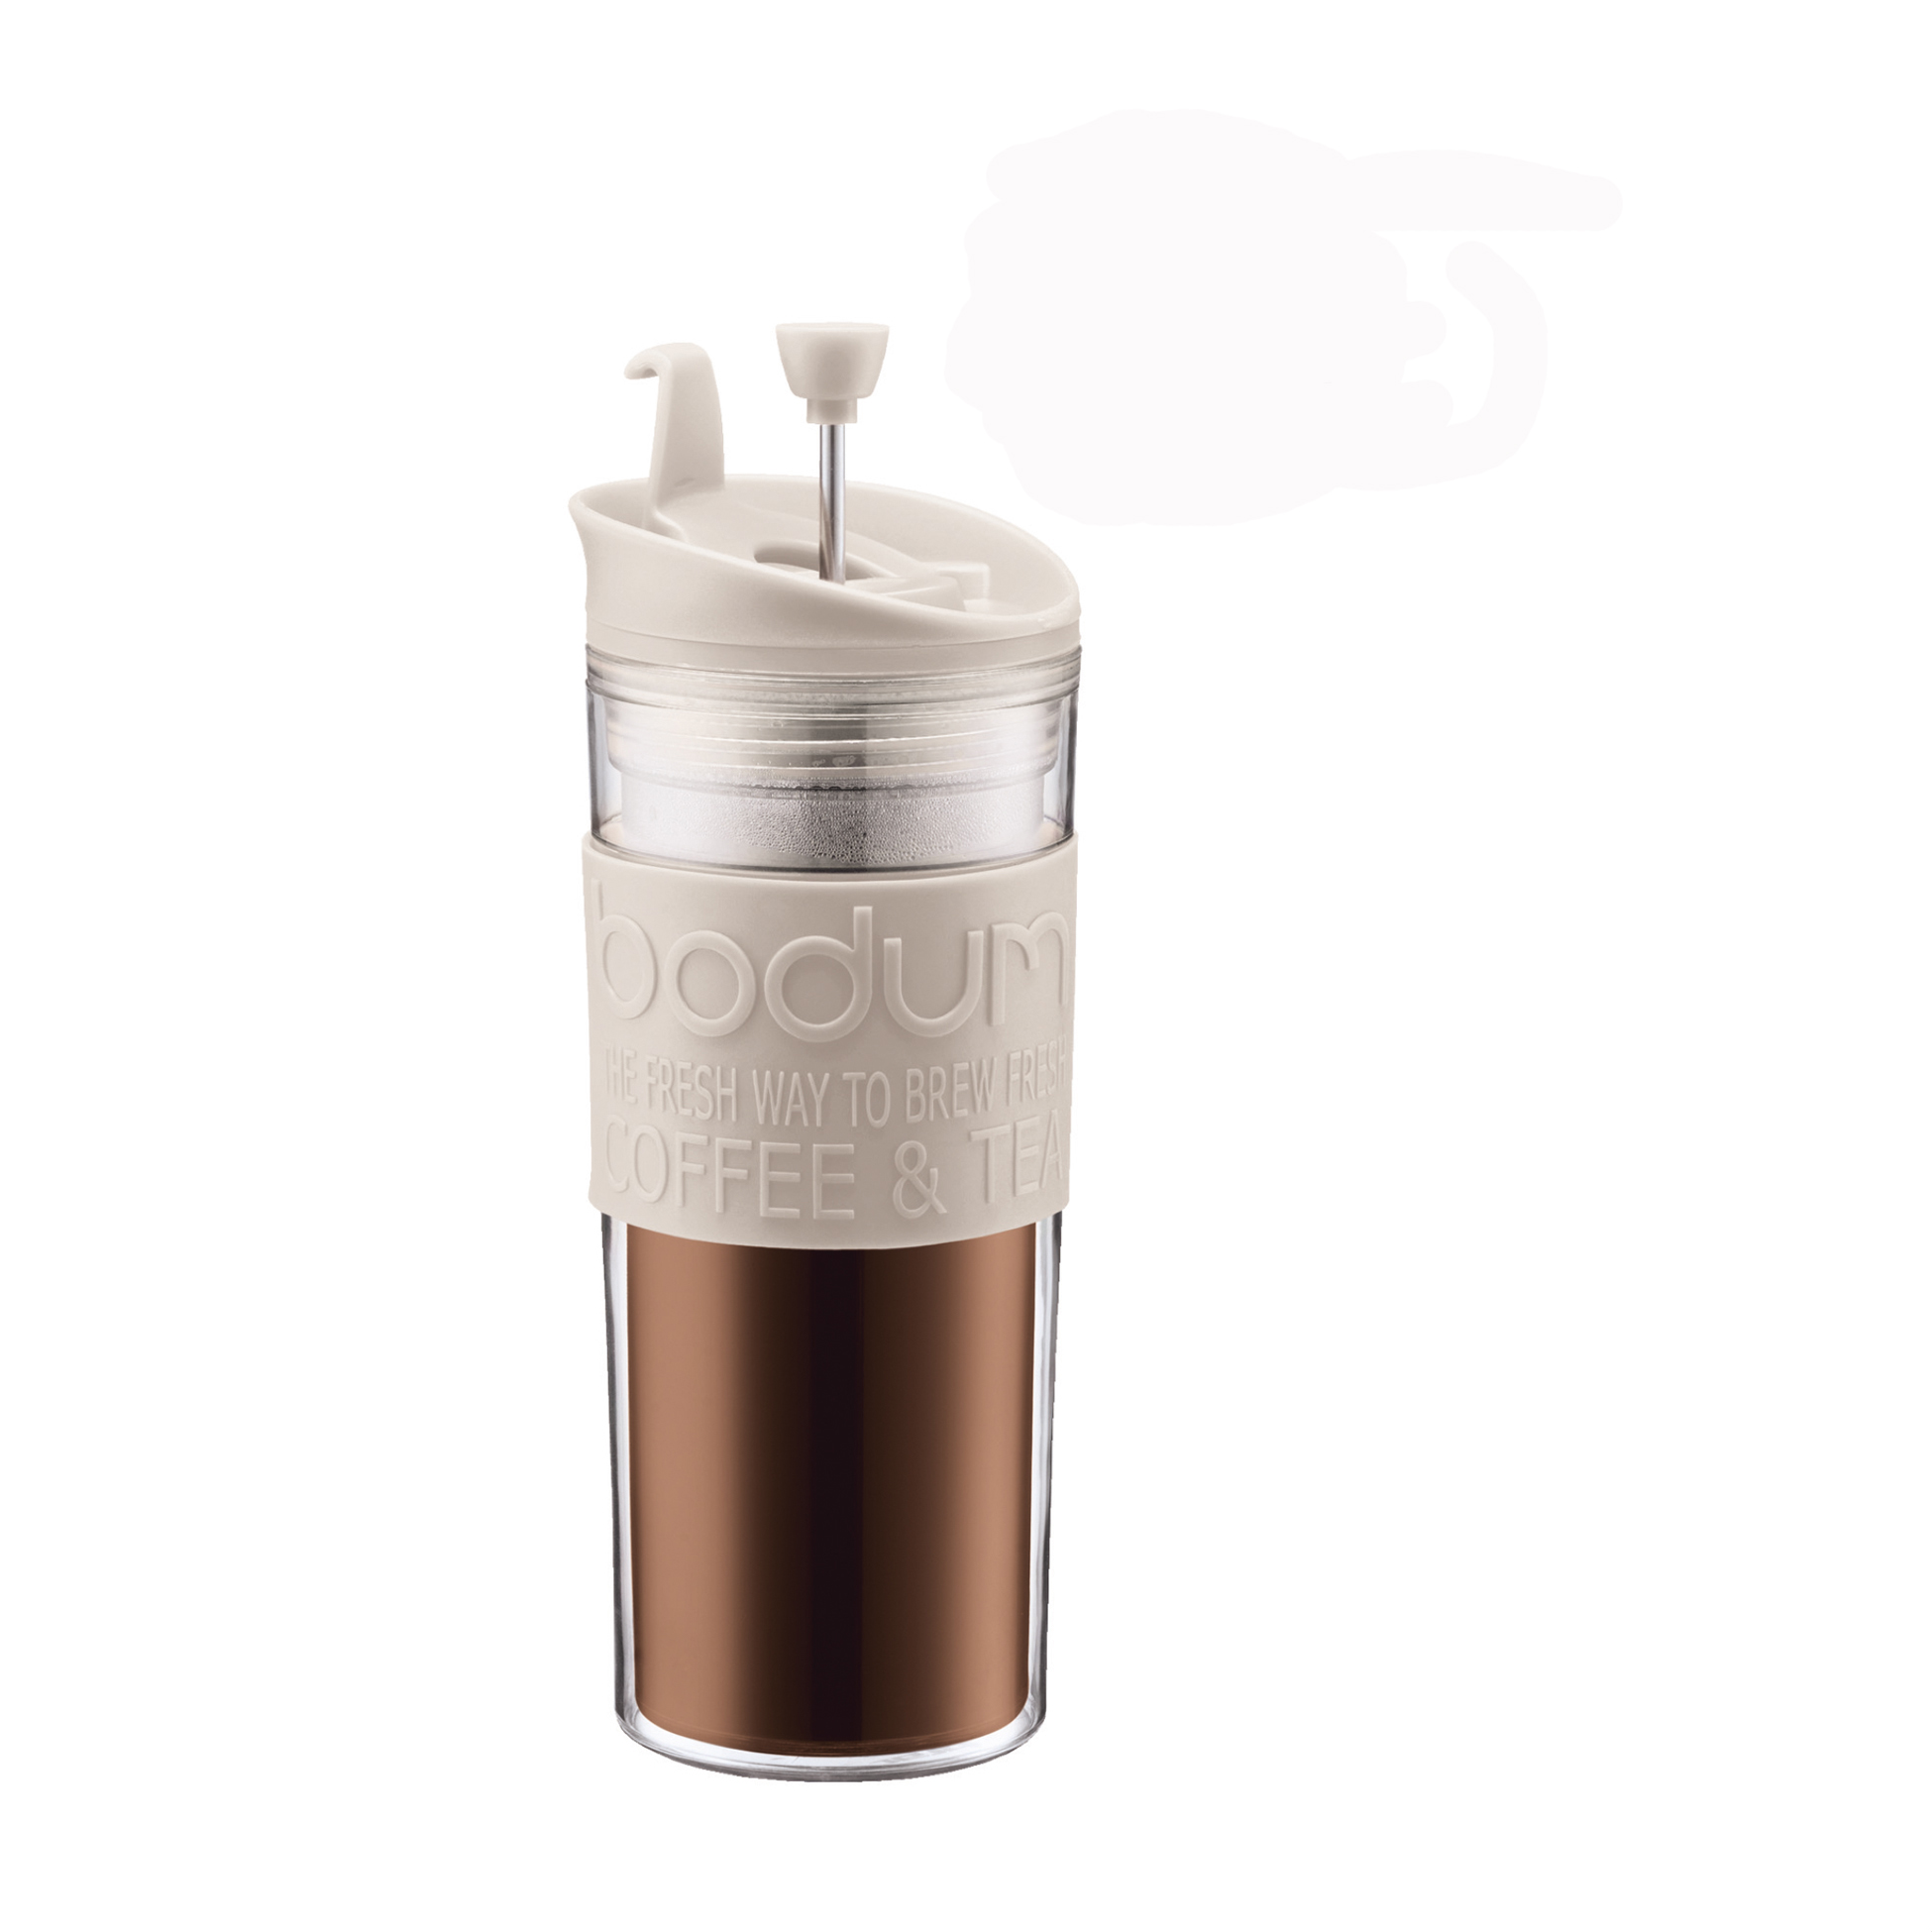 Bodum 0.45L Travel Mug Press Double Wall Plastic Coffee Maker Off White Boxed eBay